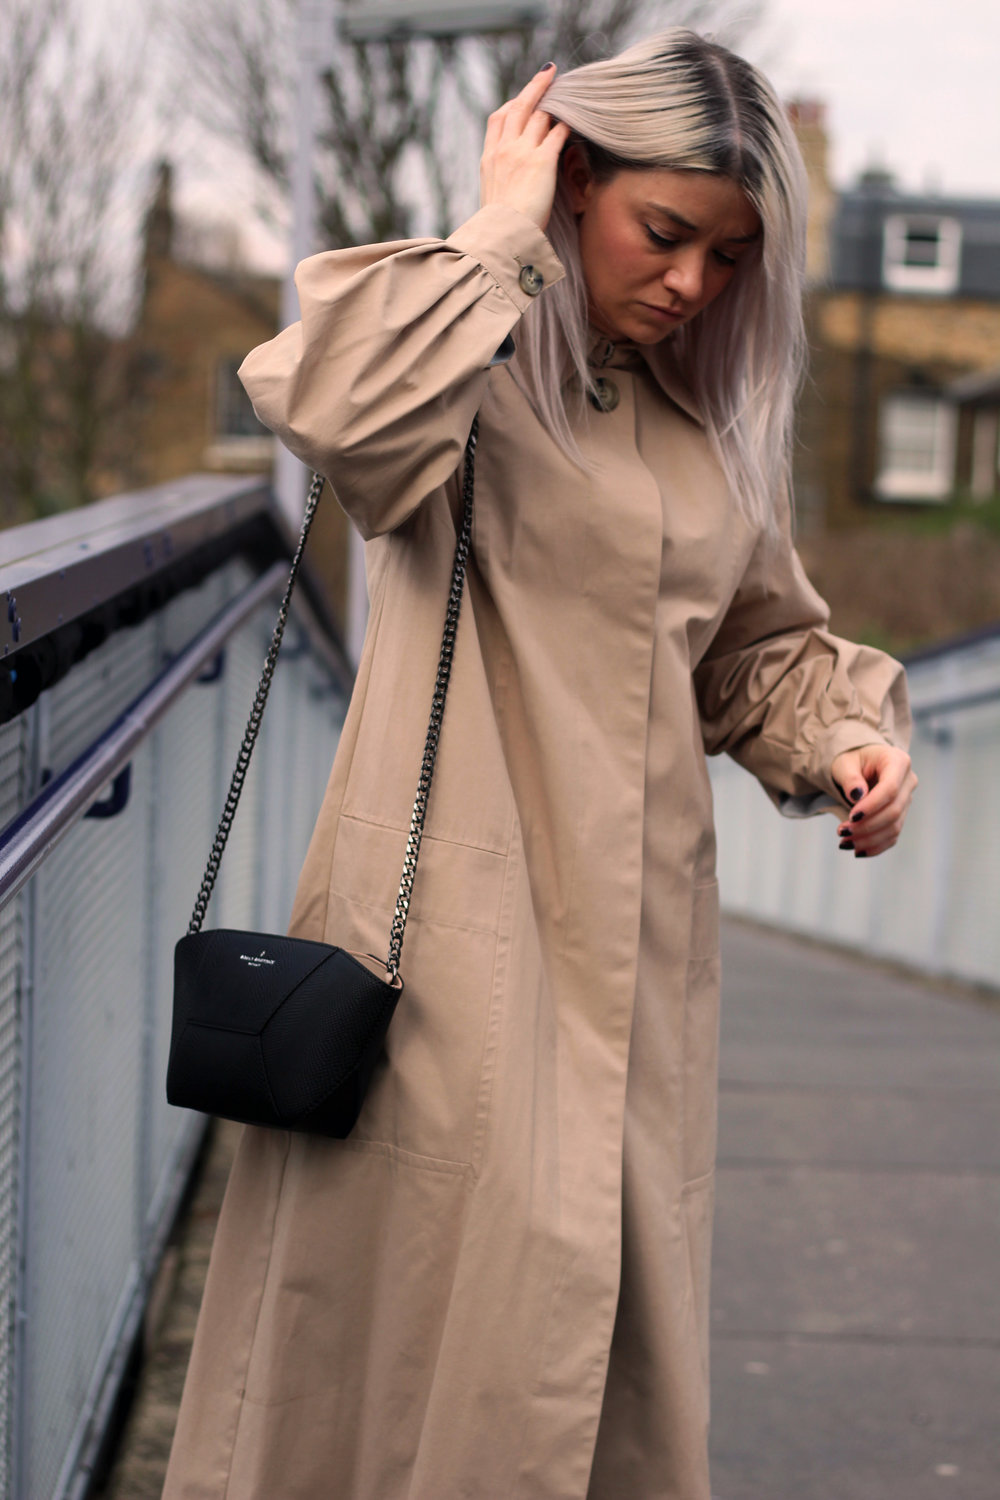 TRENCH COAT, PAULS BOUTIQUE BAG, GIVEAWAY, TOPSHOP JEANS 3